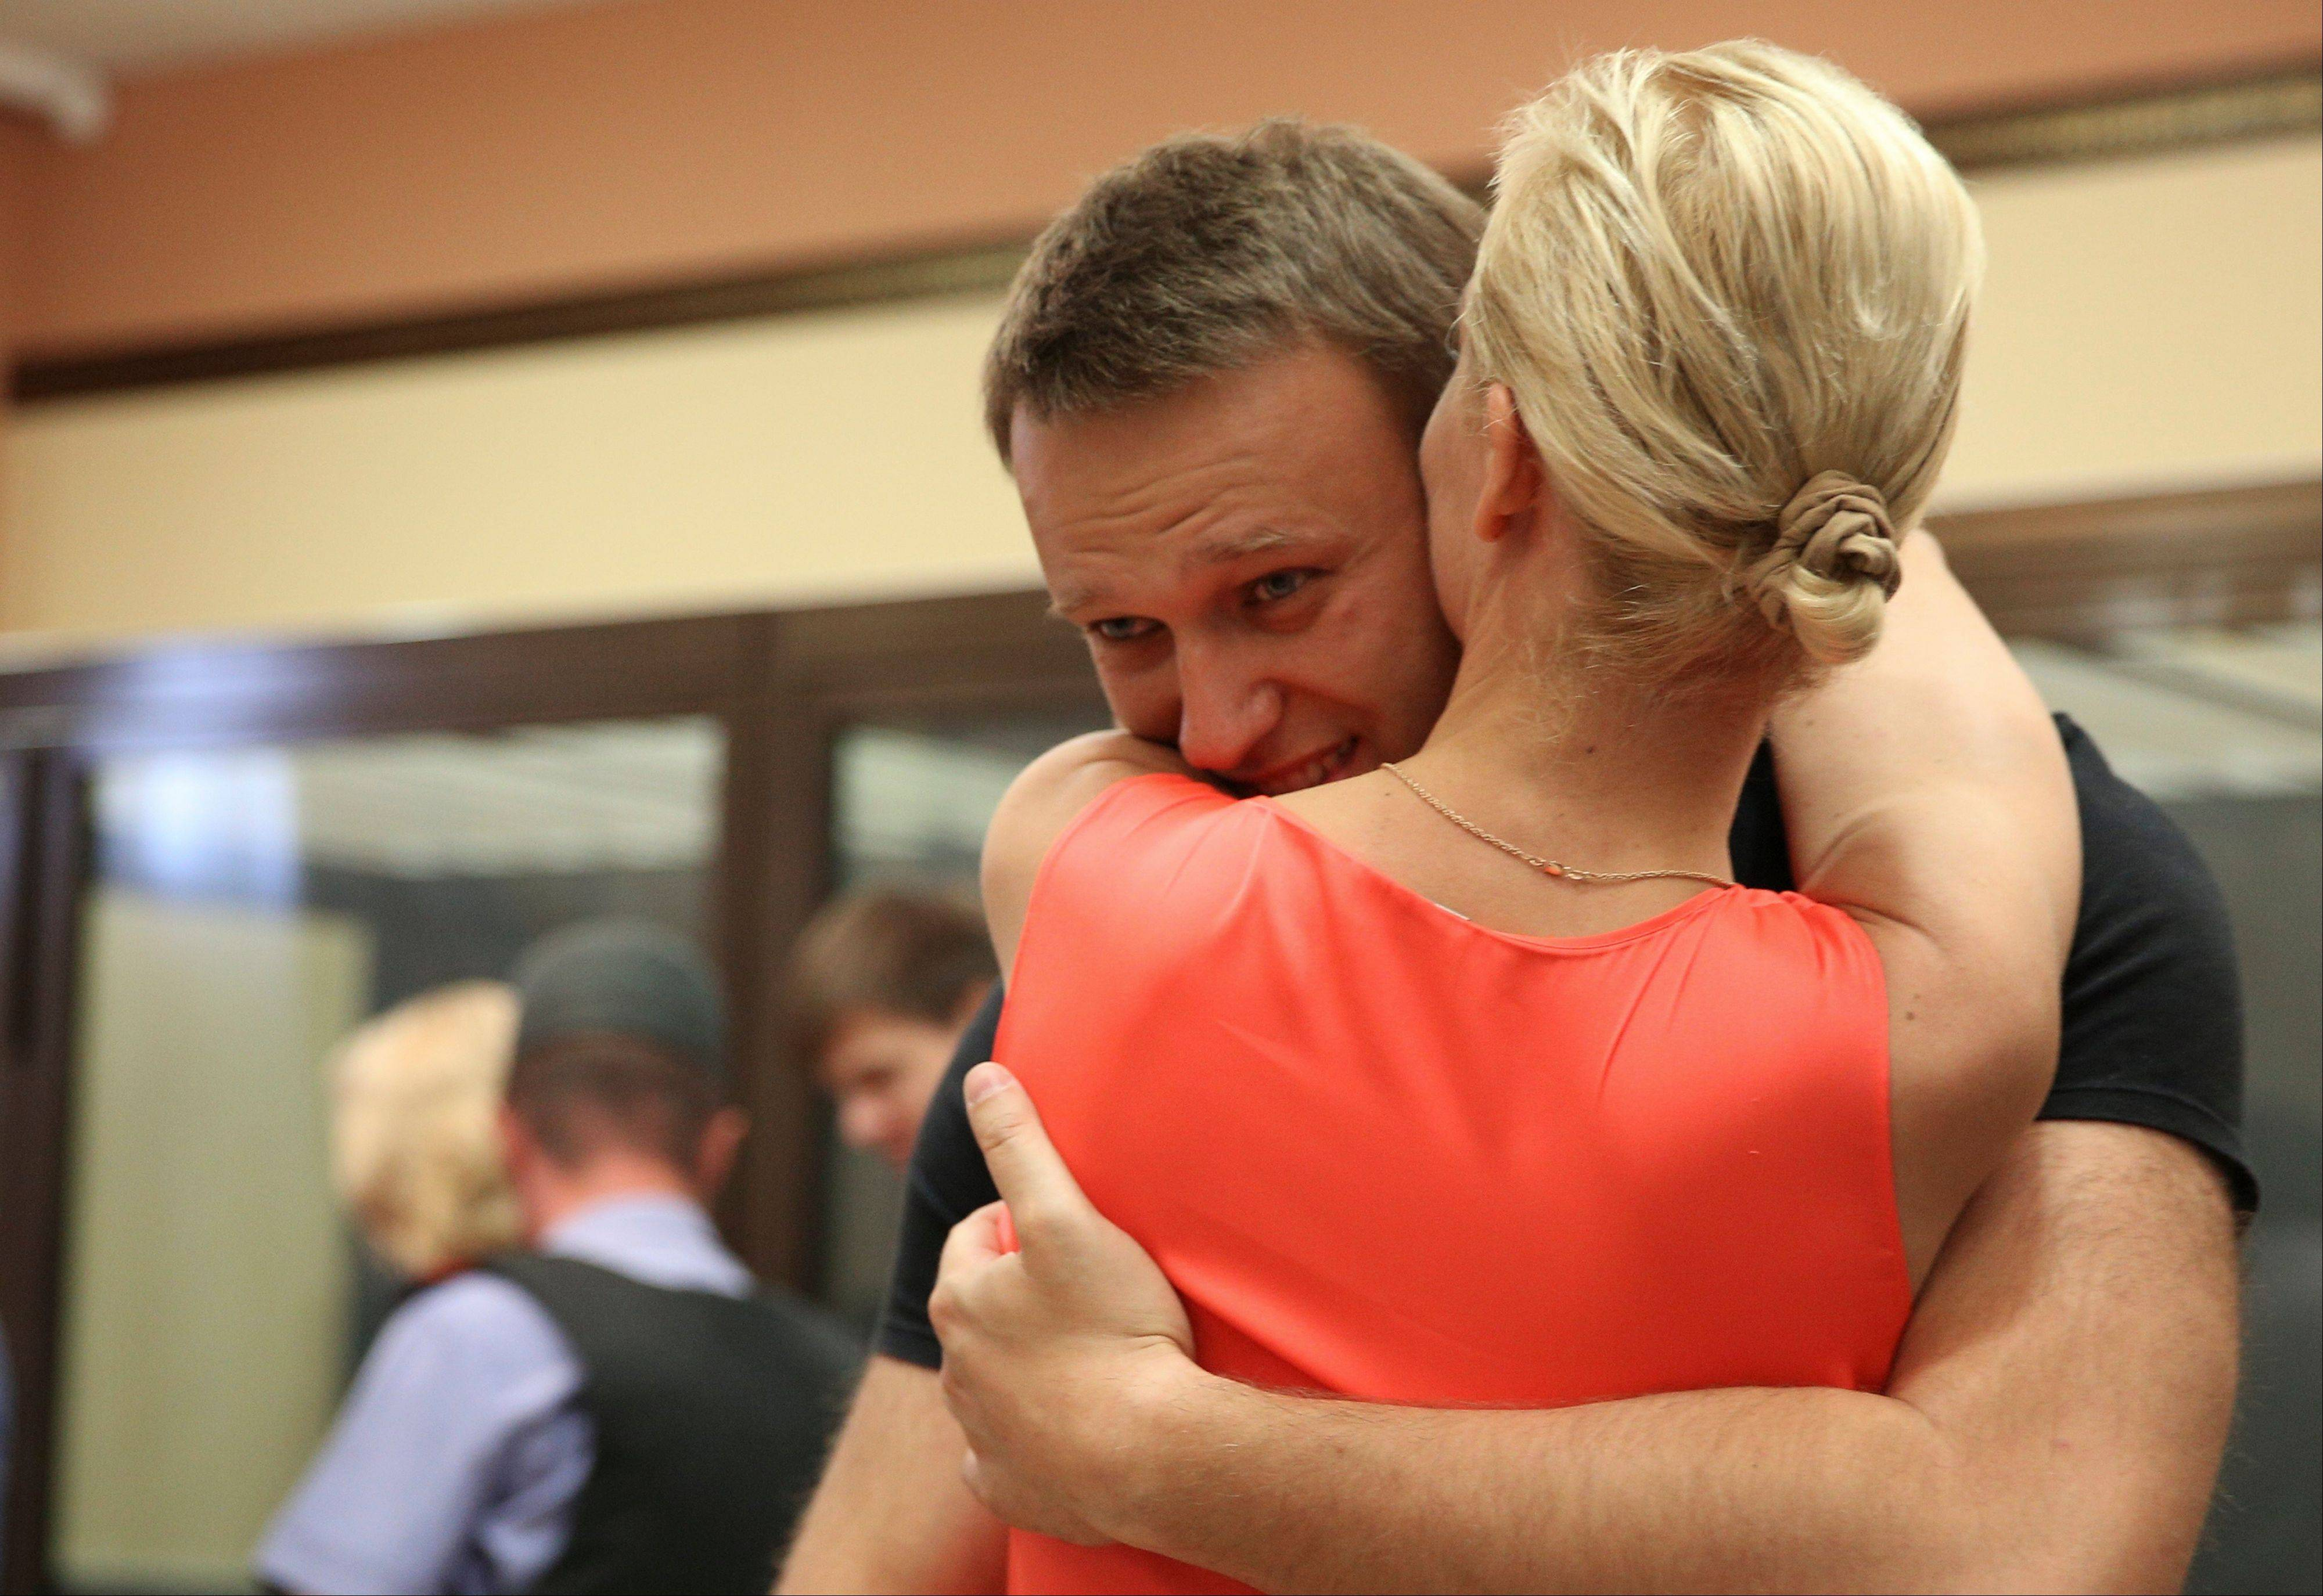 Russian opposition leader Alexei Navalny, embraces his wife Yulia, as he was released in a courtroom in Kirov, Russia Friday, July 19, 2013. A Russian court on Friday released opposition leader Alexei Navalny from custody less than 24 hours after he was convicted of embezzlement and sentenced to five years in prison. The release came after a surprise request by prosecutors, who said that because Navalny is a candidate in this fall's Moscow mayoral race keeping him in custody would deny him his right to seek election.